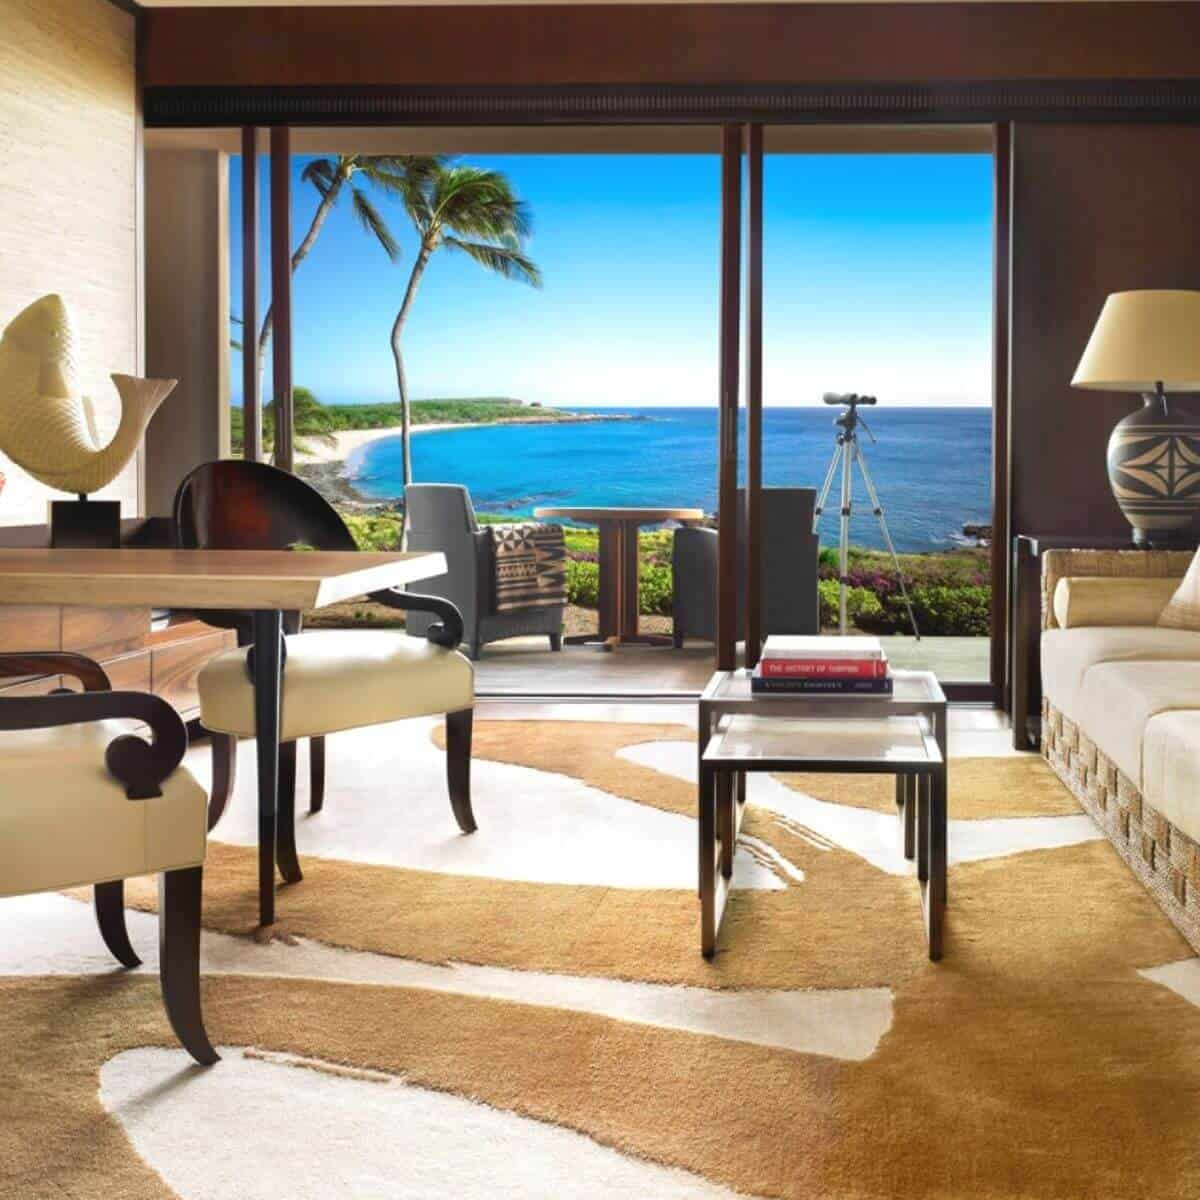 View of the ocean from an oceanfront suite at the Four Seasons Lanai.